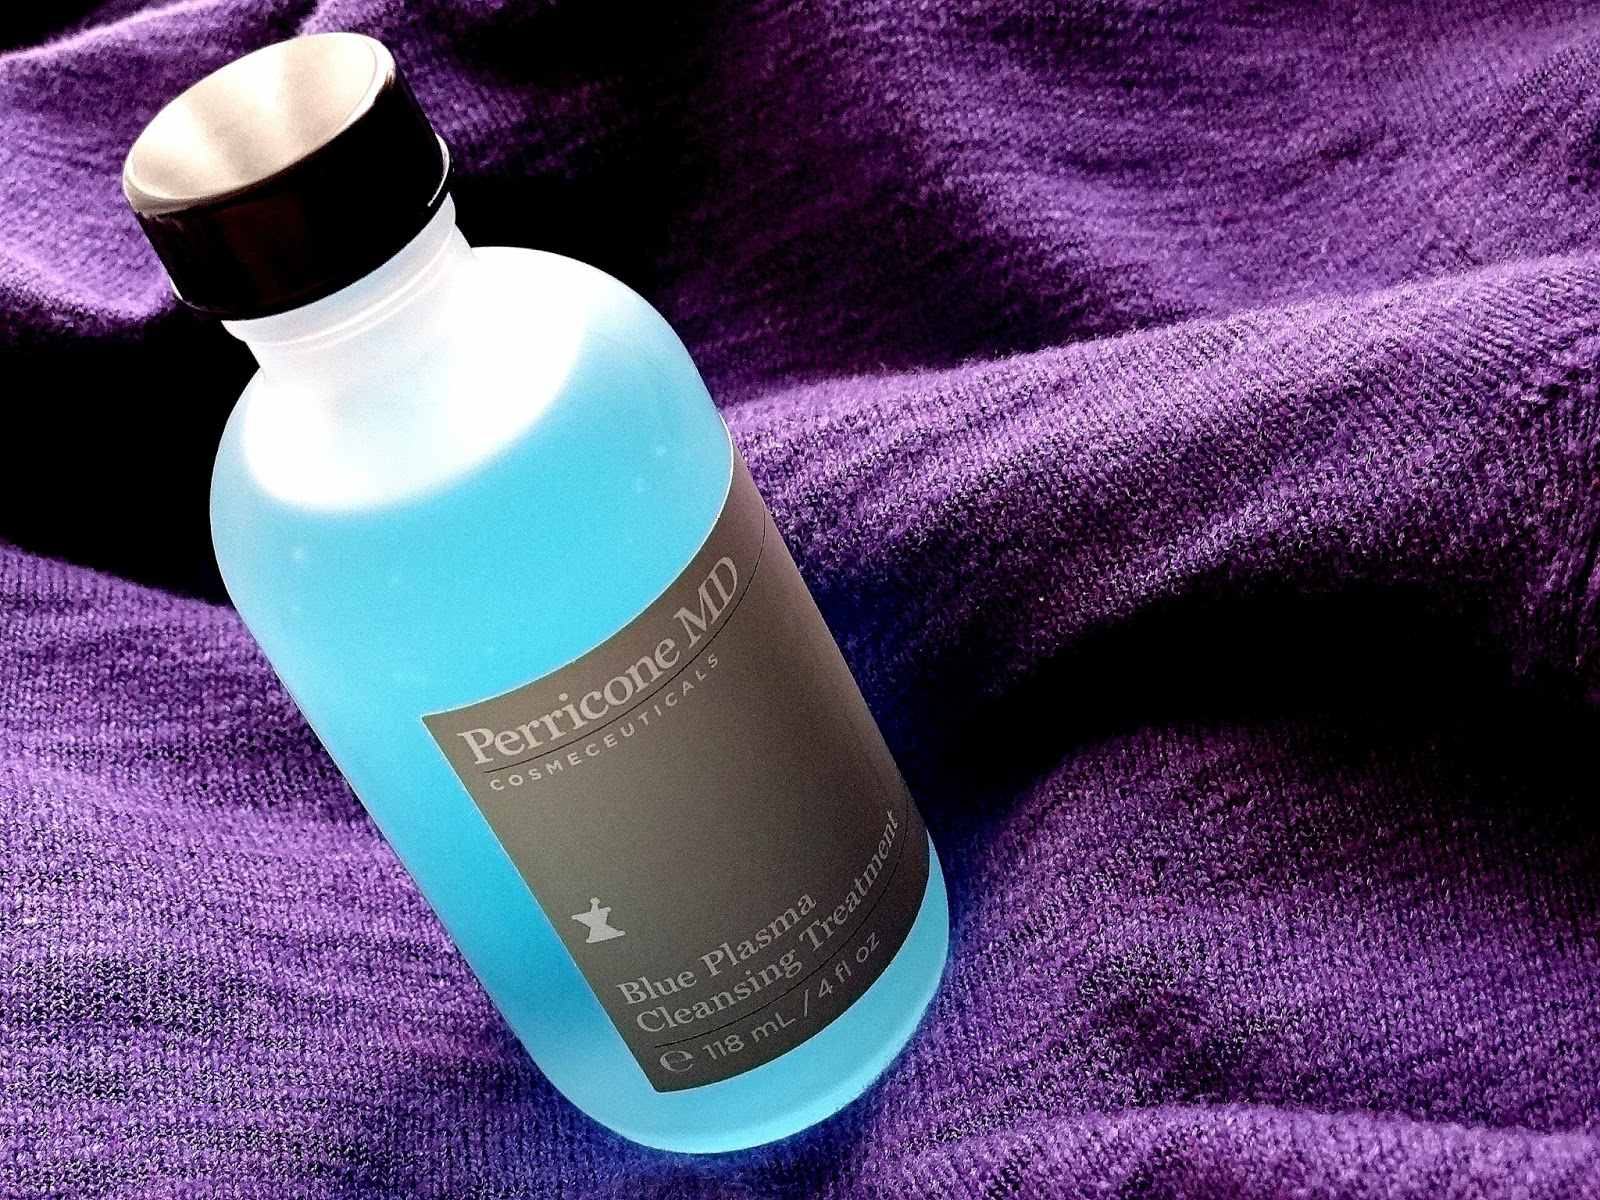 Perricone MD Blue Plasma Cleansing Treatment Review, Photos